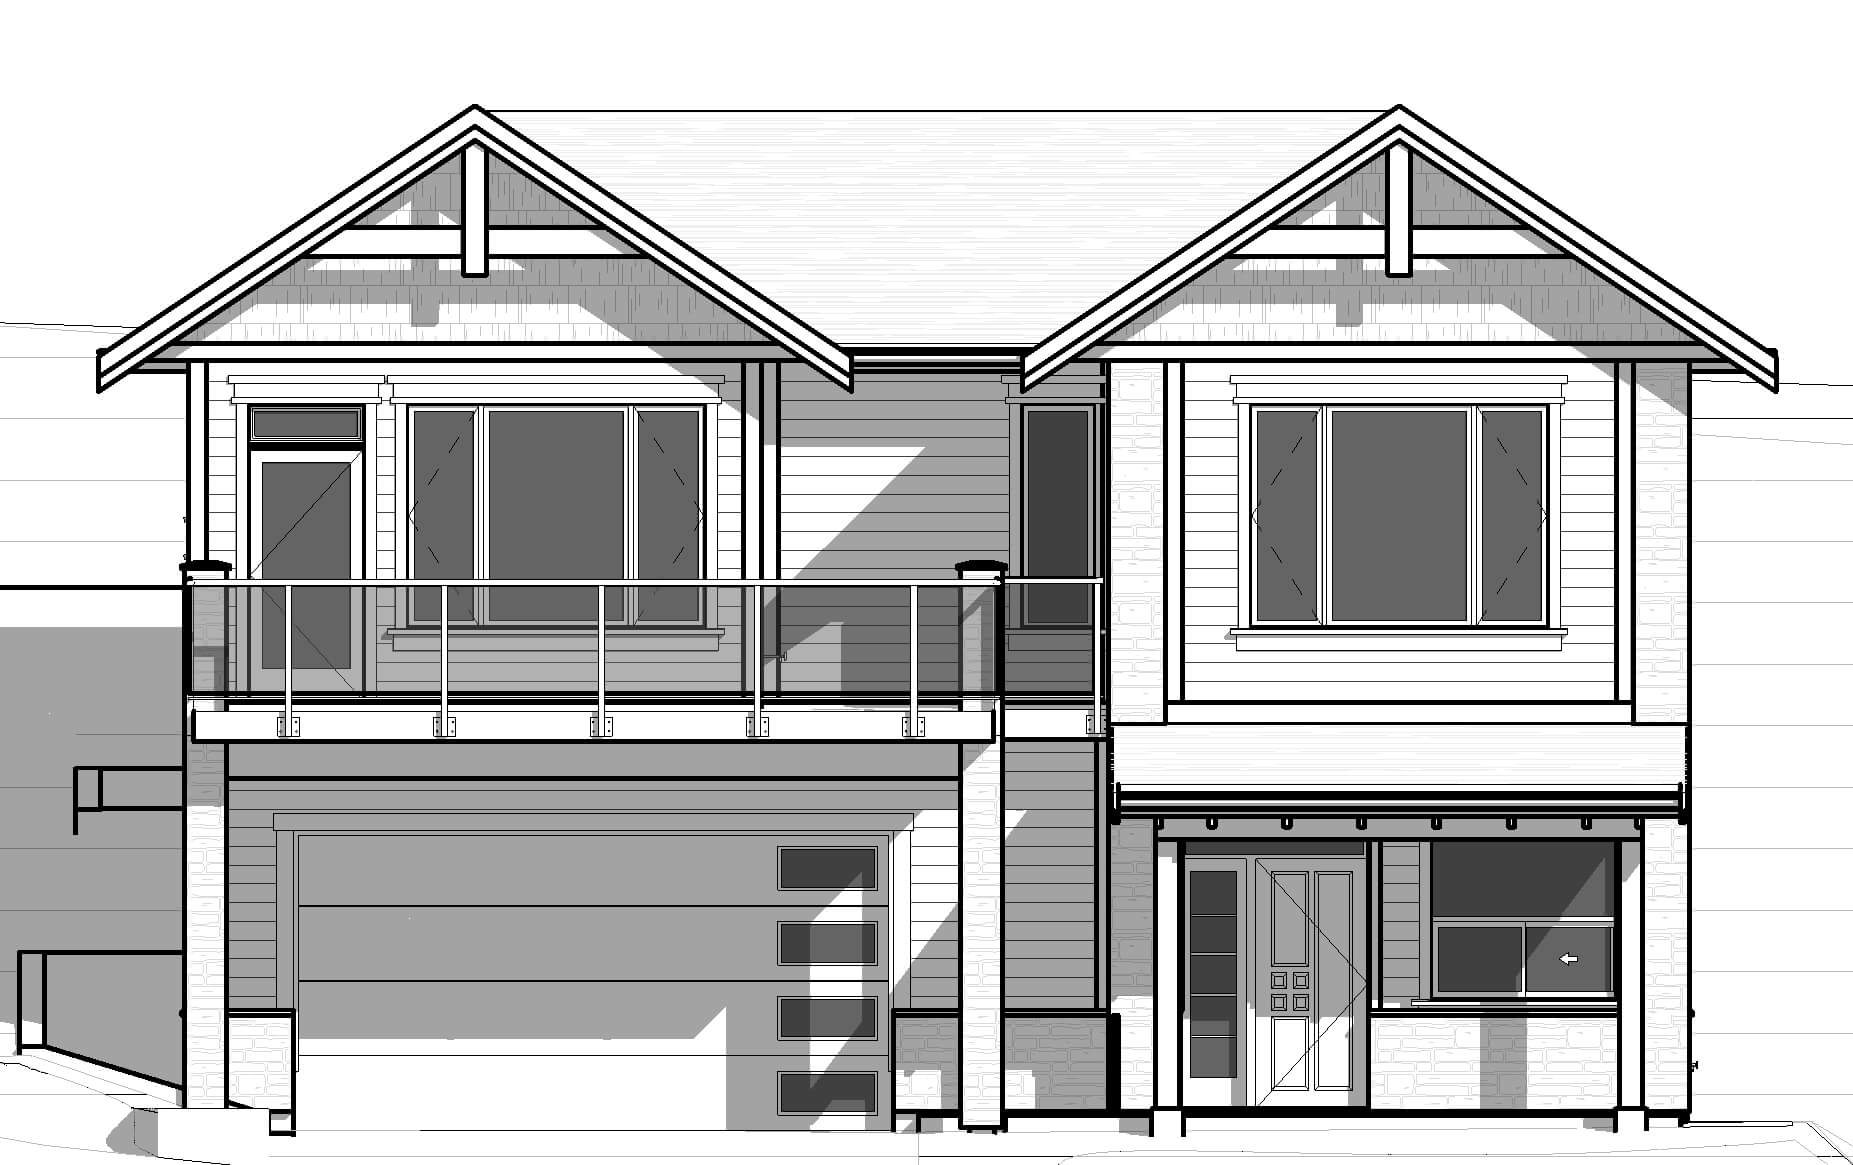 18048-Front-Elevation Castlerock House Plan on house painting, house exterior, house plants, house foundation, house construction, house rendering, house clip art, house styles, house drawings, house maps, house roof, house design, house structure, house models, house building, house layout, house elevations, house framing, house blueprints, house types,